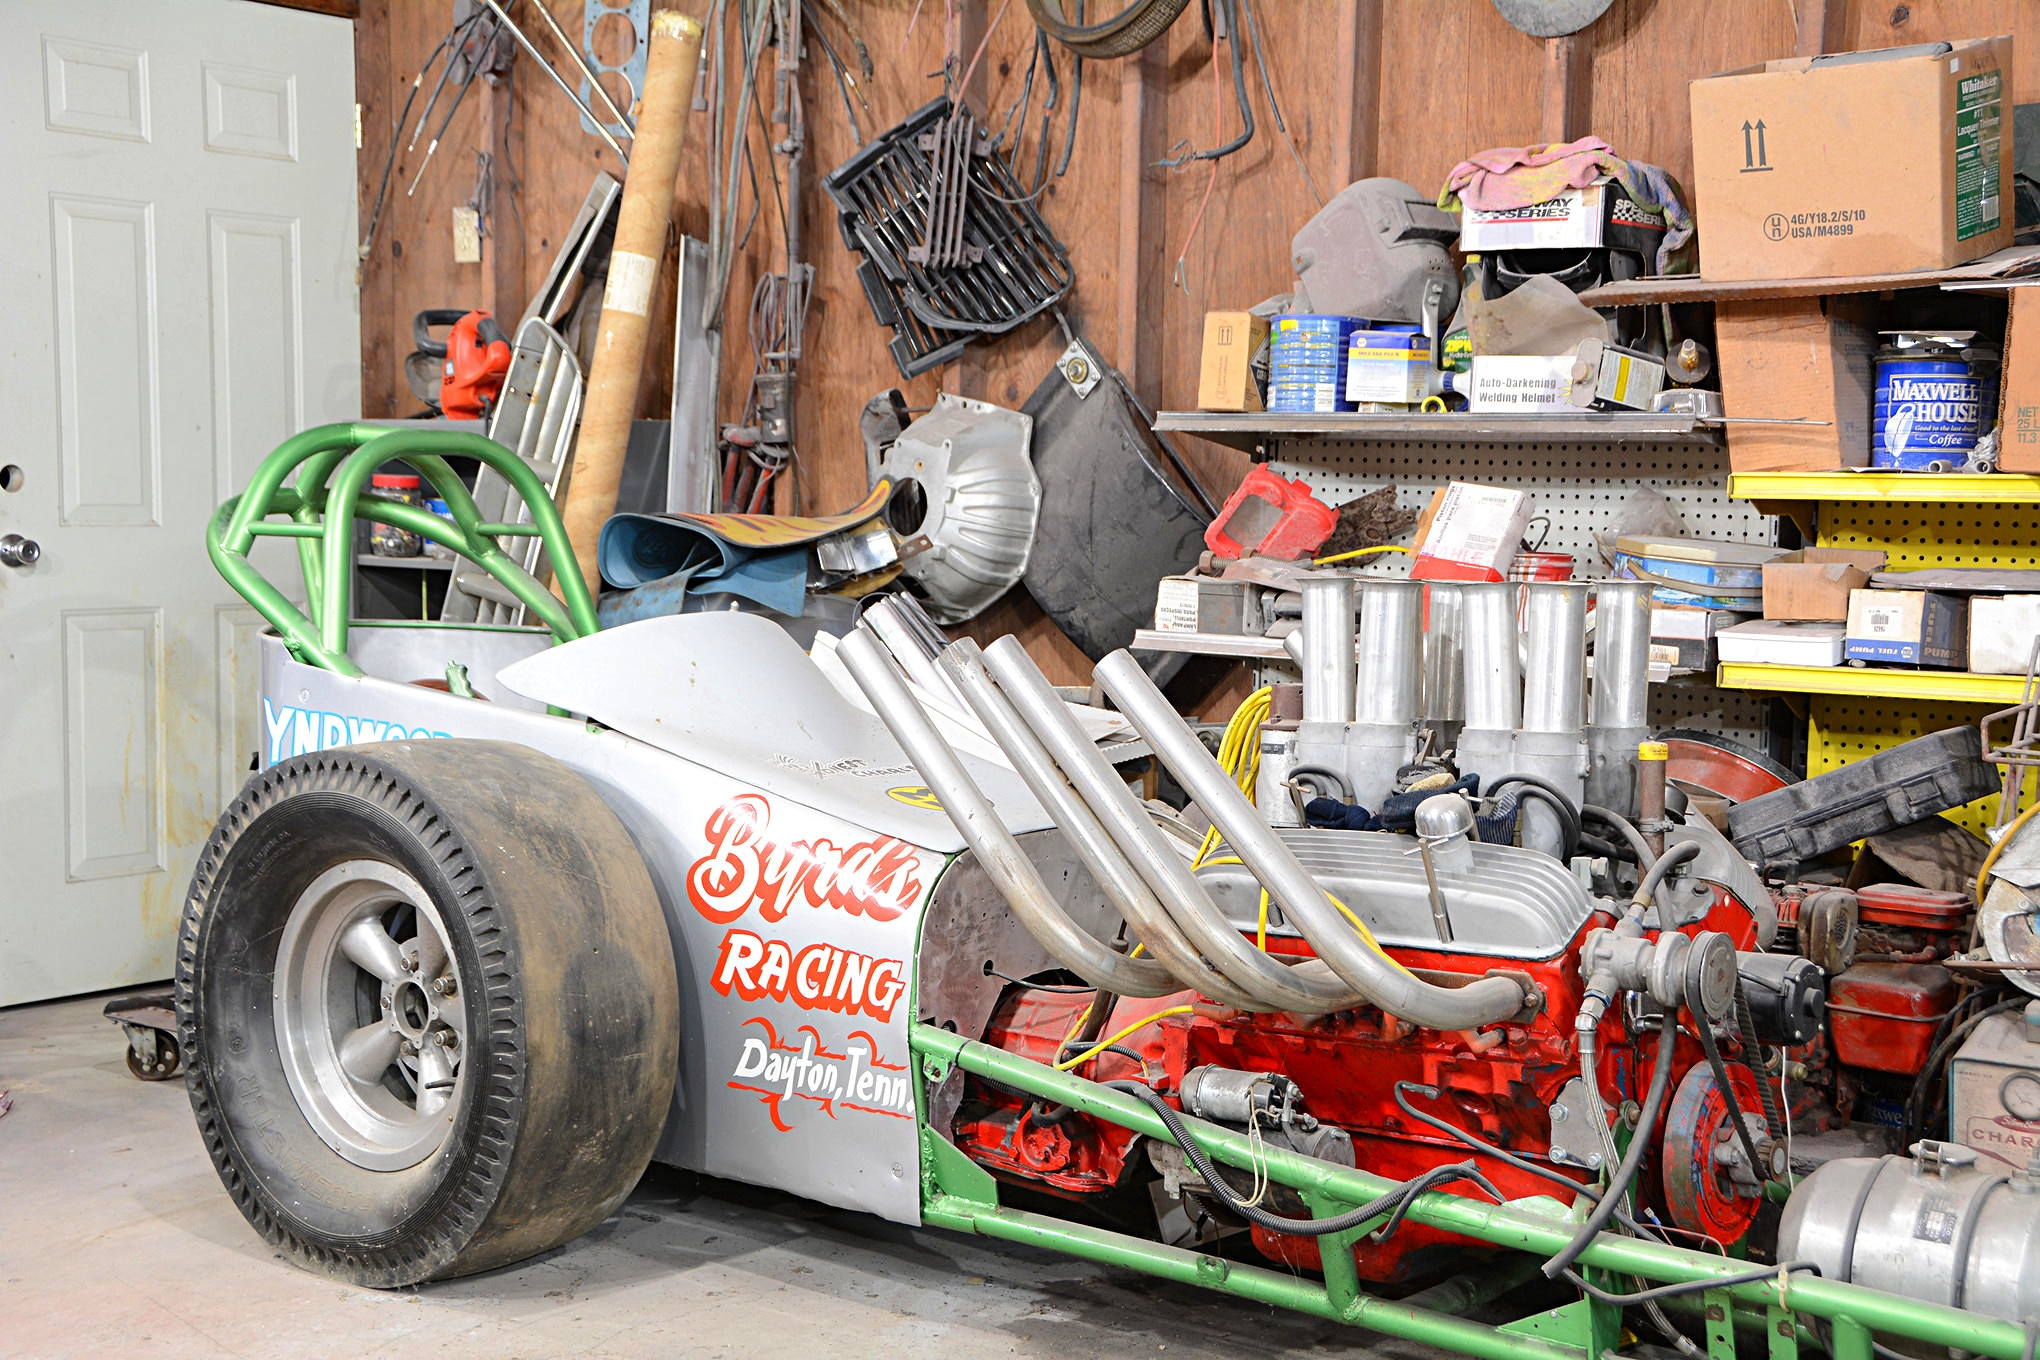 The first vintage drag car that caught Troy's eye was this Lyndwood dragster. It has yet to be fully identified and documented, but it was built in 1964 and was one of the final Lyndwood Welding frames offered to the public. The Pete Jackson fuel injection atop the small-block Chevy is also a rare piece.